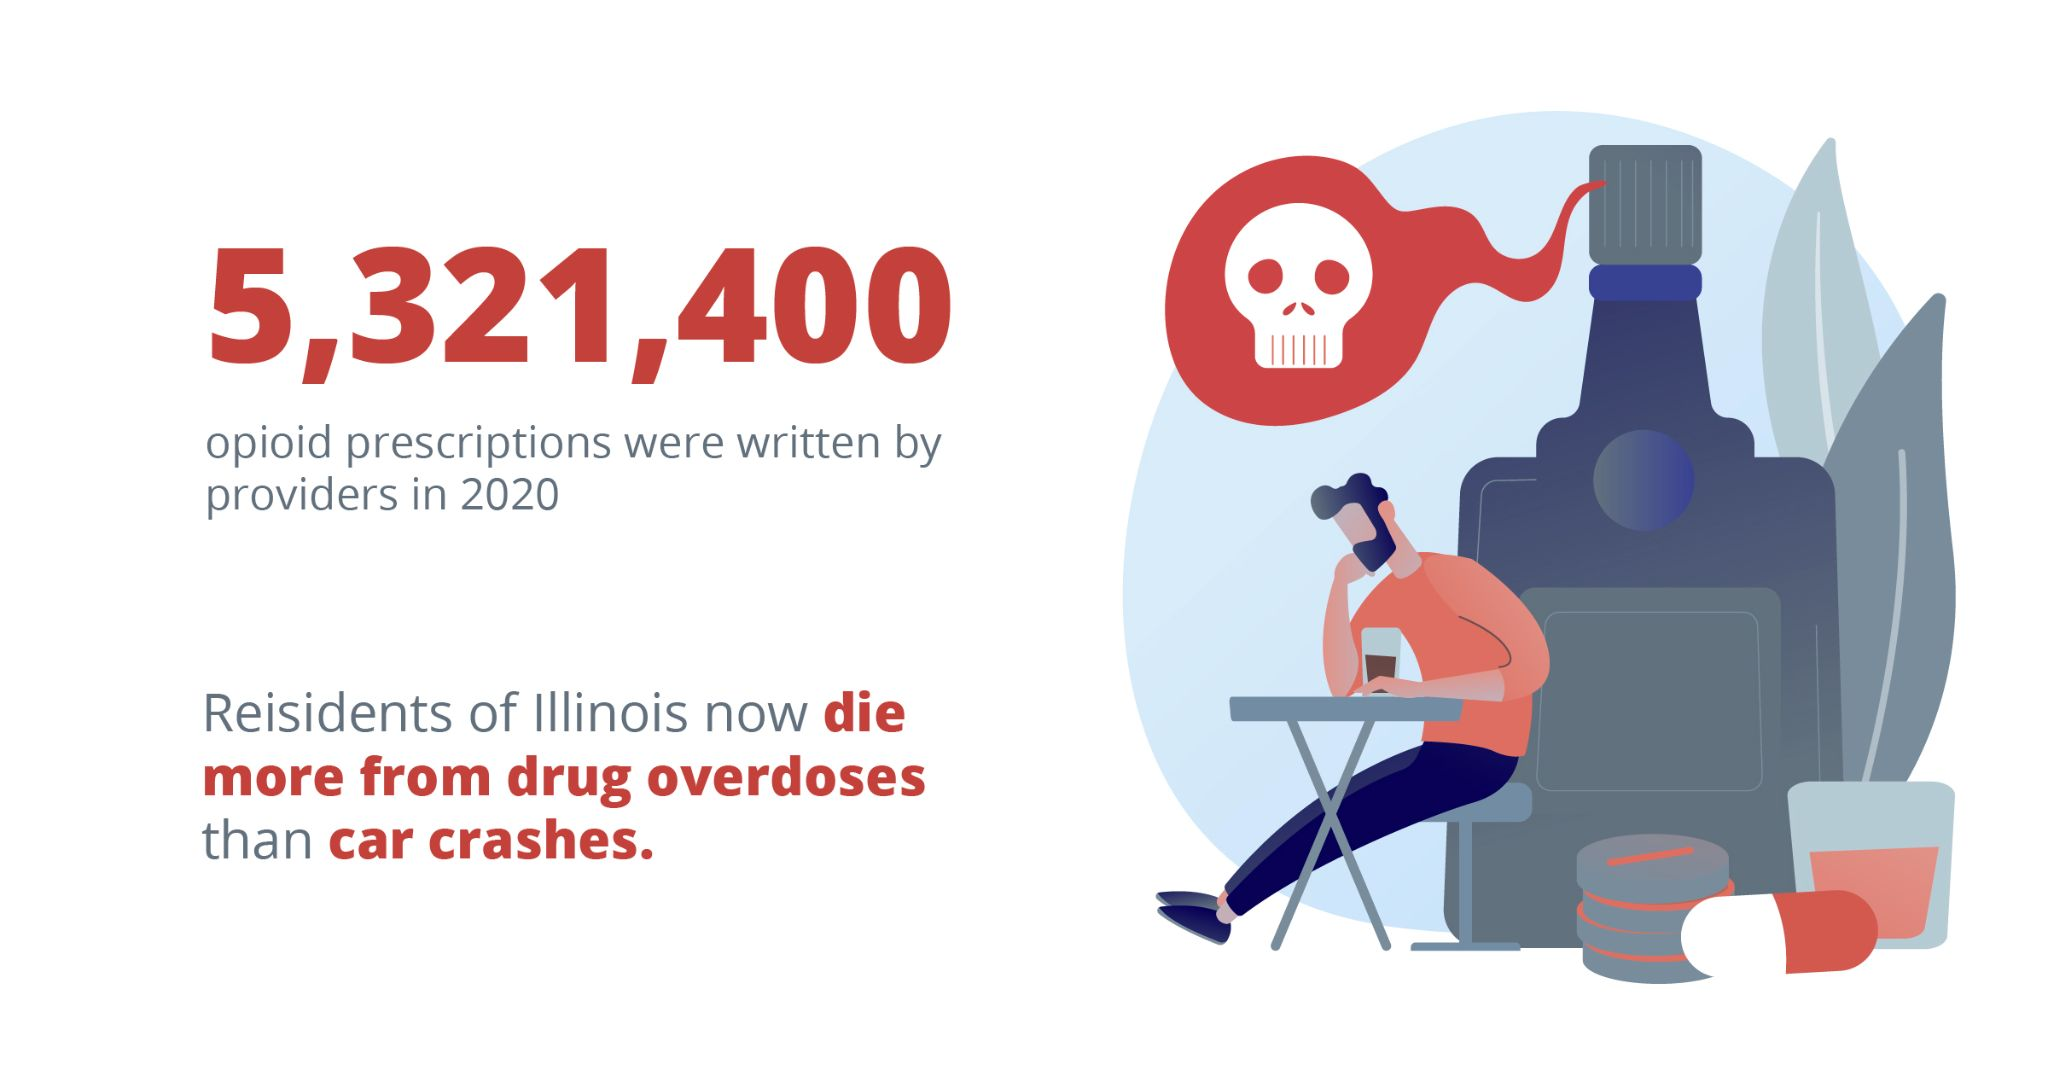 5,321,400 opioid prescriptions were written by providers in 2020. Residents of illinois now die more from drug overdoses than car crashes.